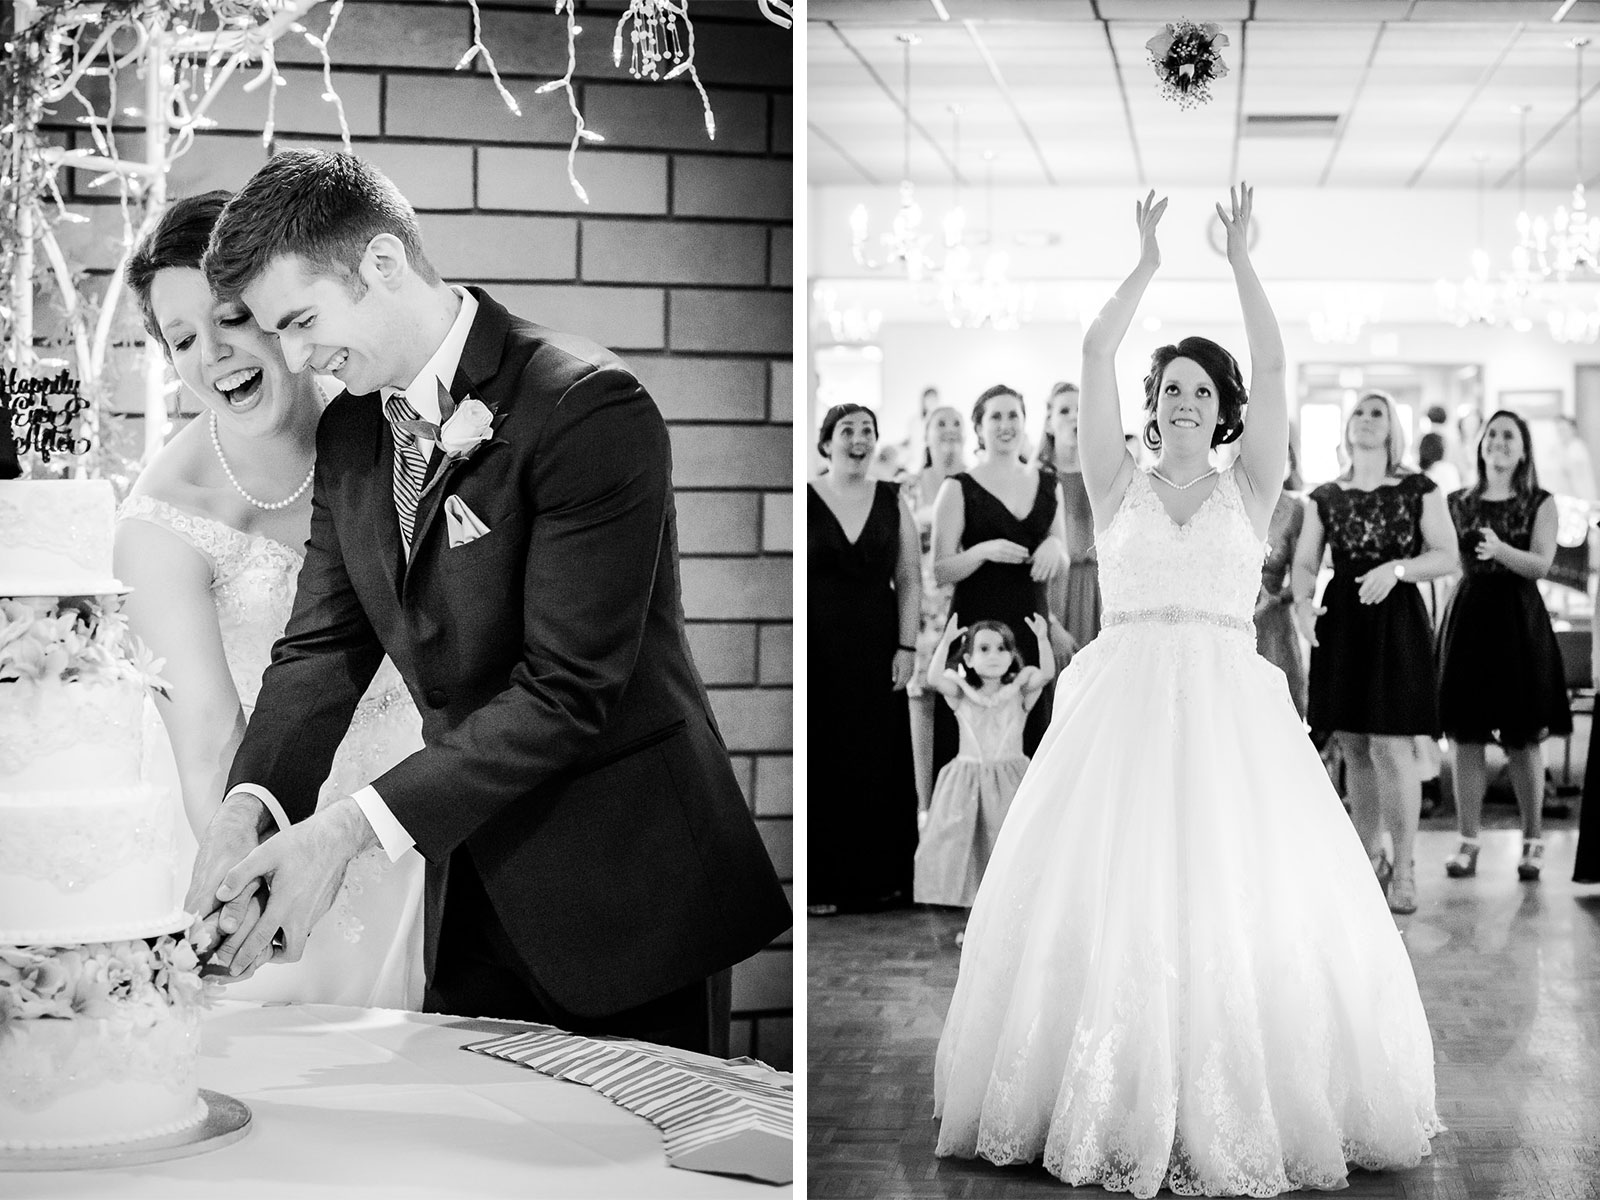 Eric_and_Christy_Photography_Blog_Wedding_Kelly_Michael-53-54